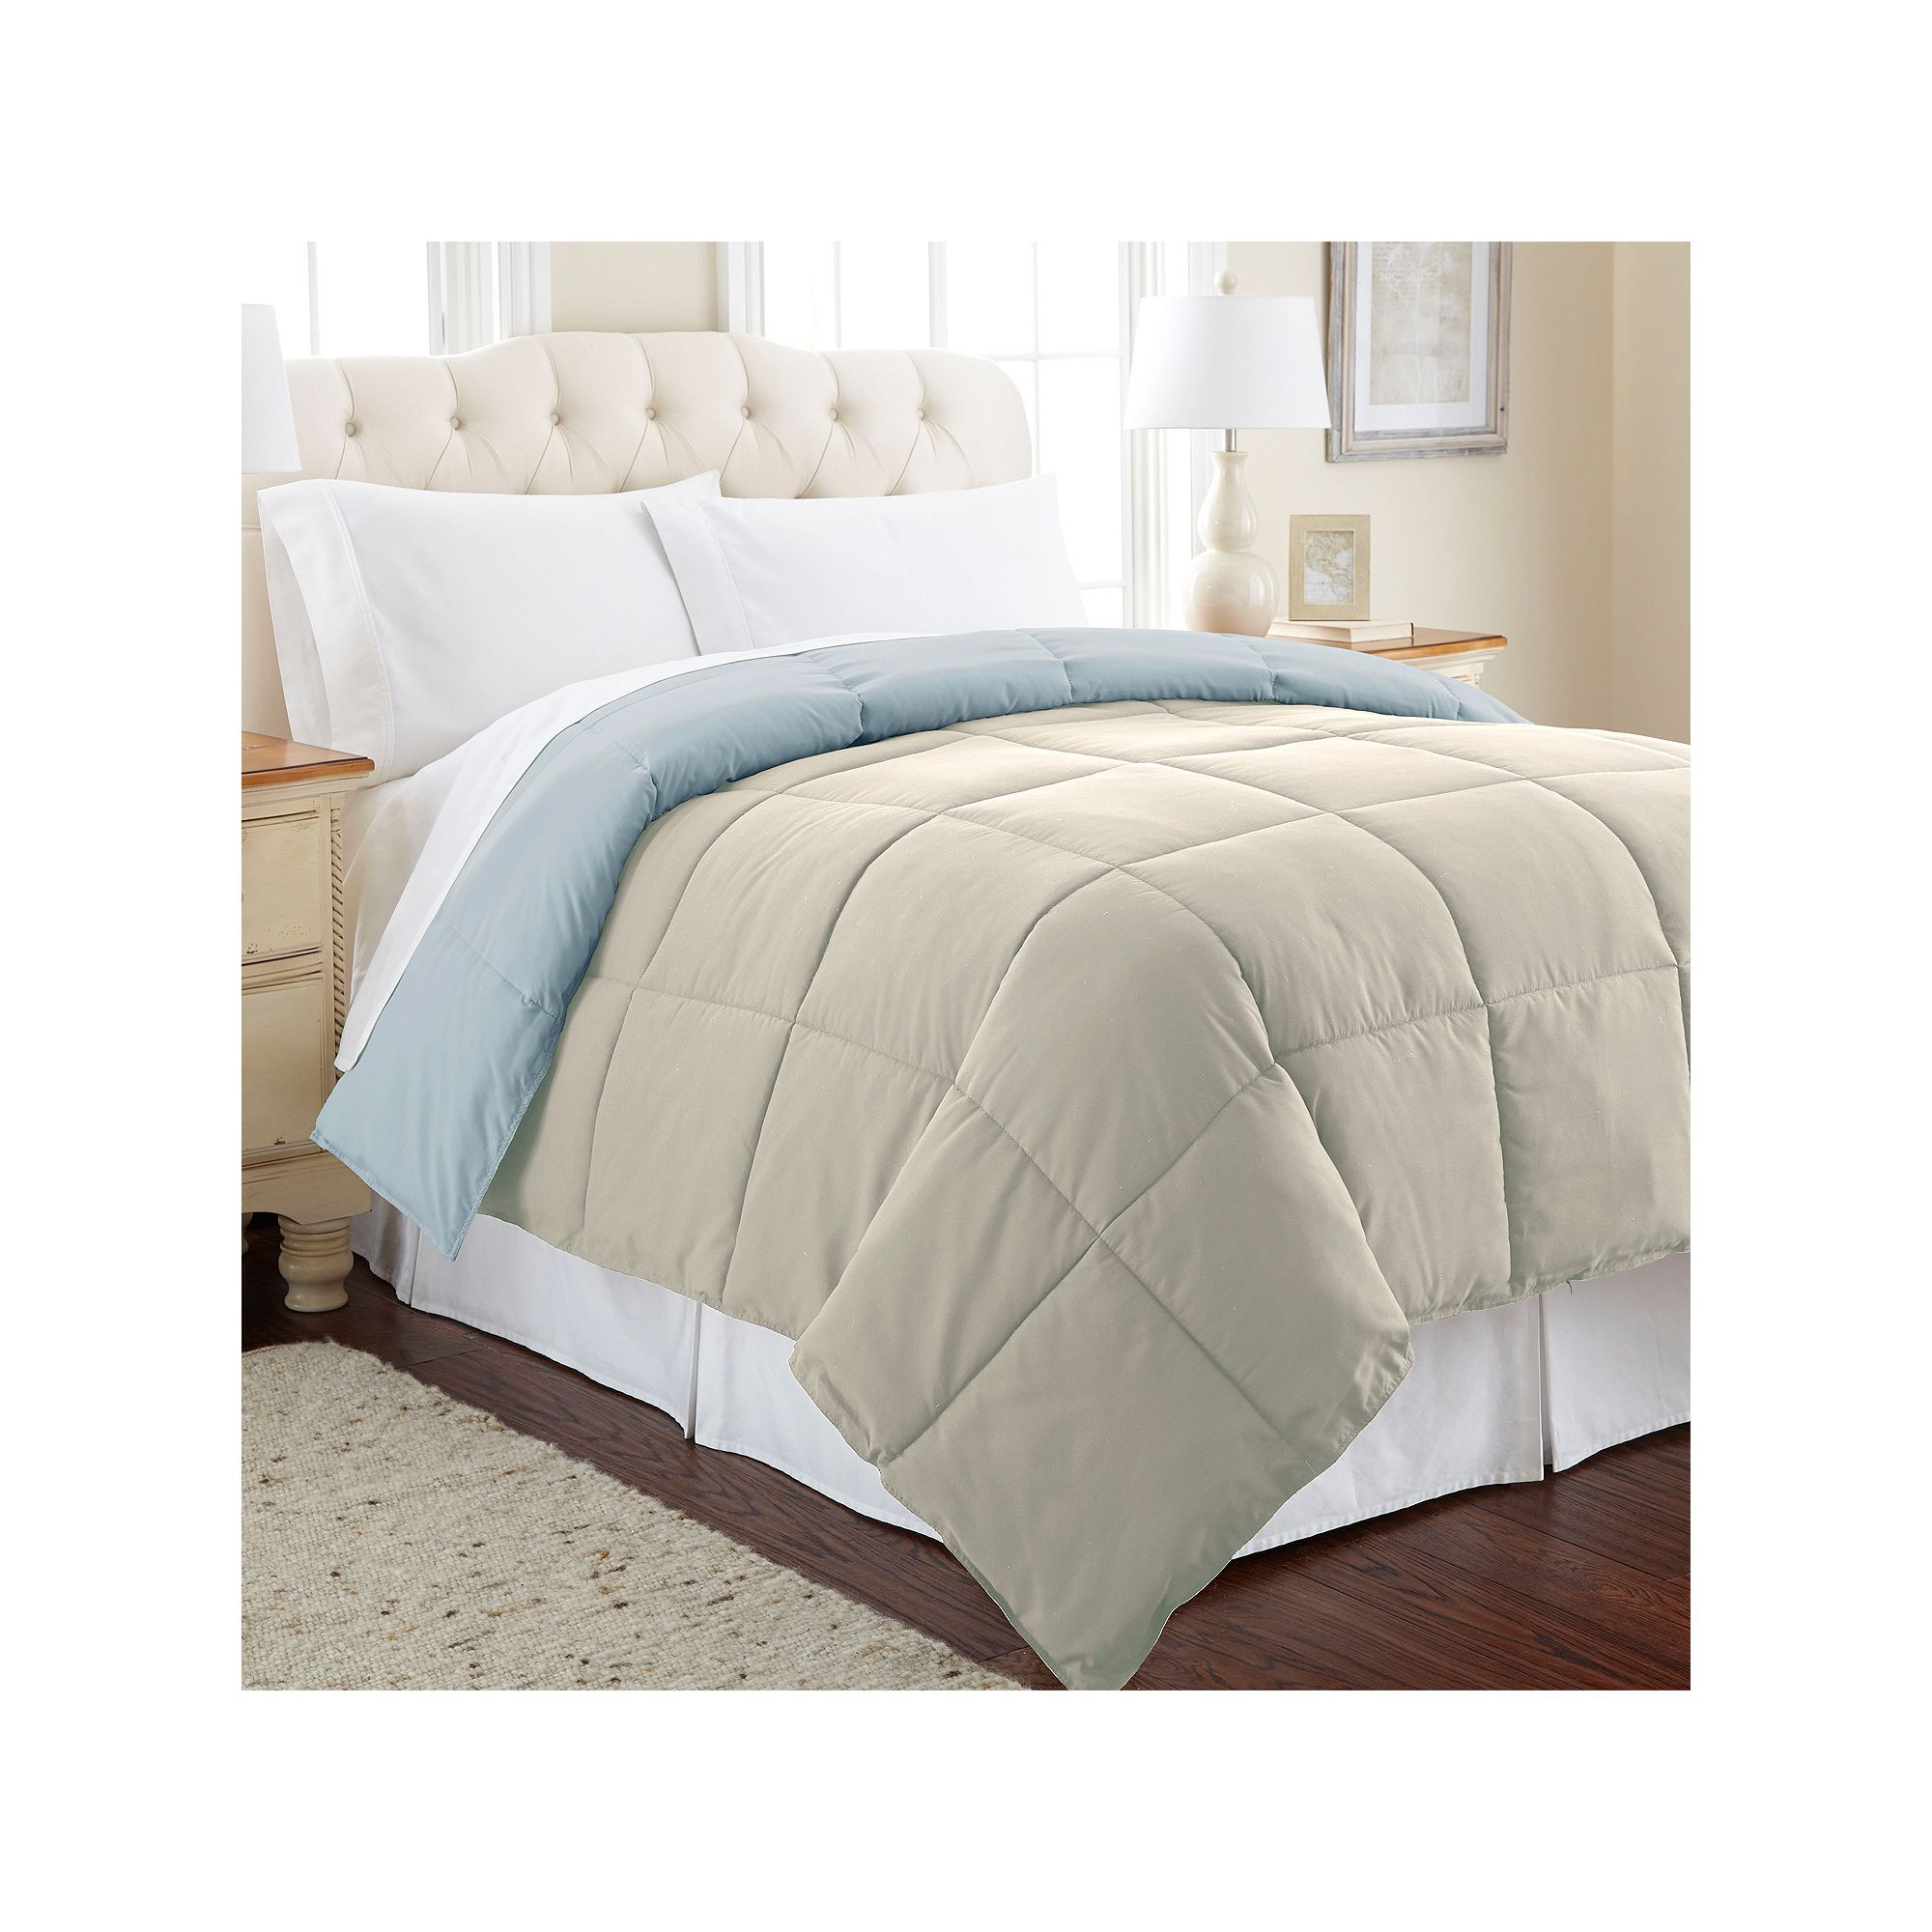 cover magnificent pacific coast en goose ideas cozy bedroom down reviews comforters barn lightweight for lands llbean bedspreads king decoration amazon winter pottery comforter